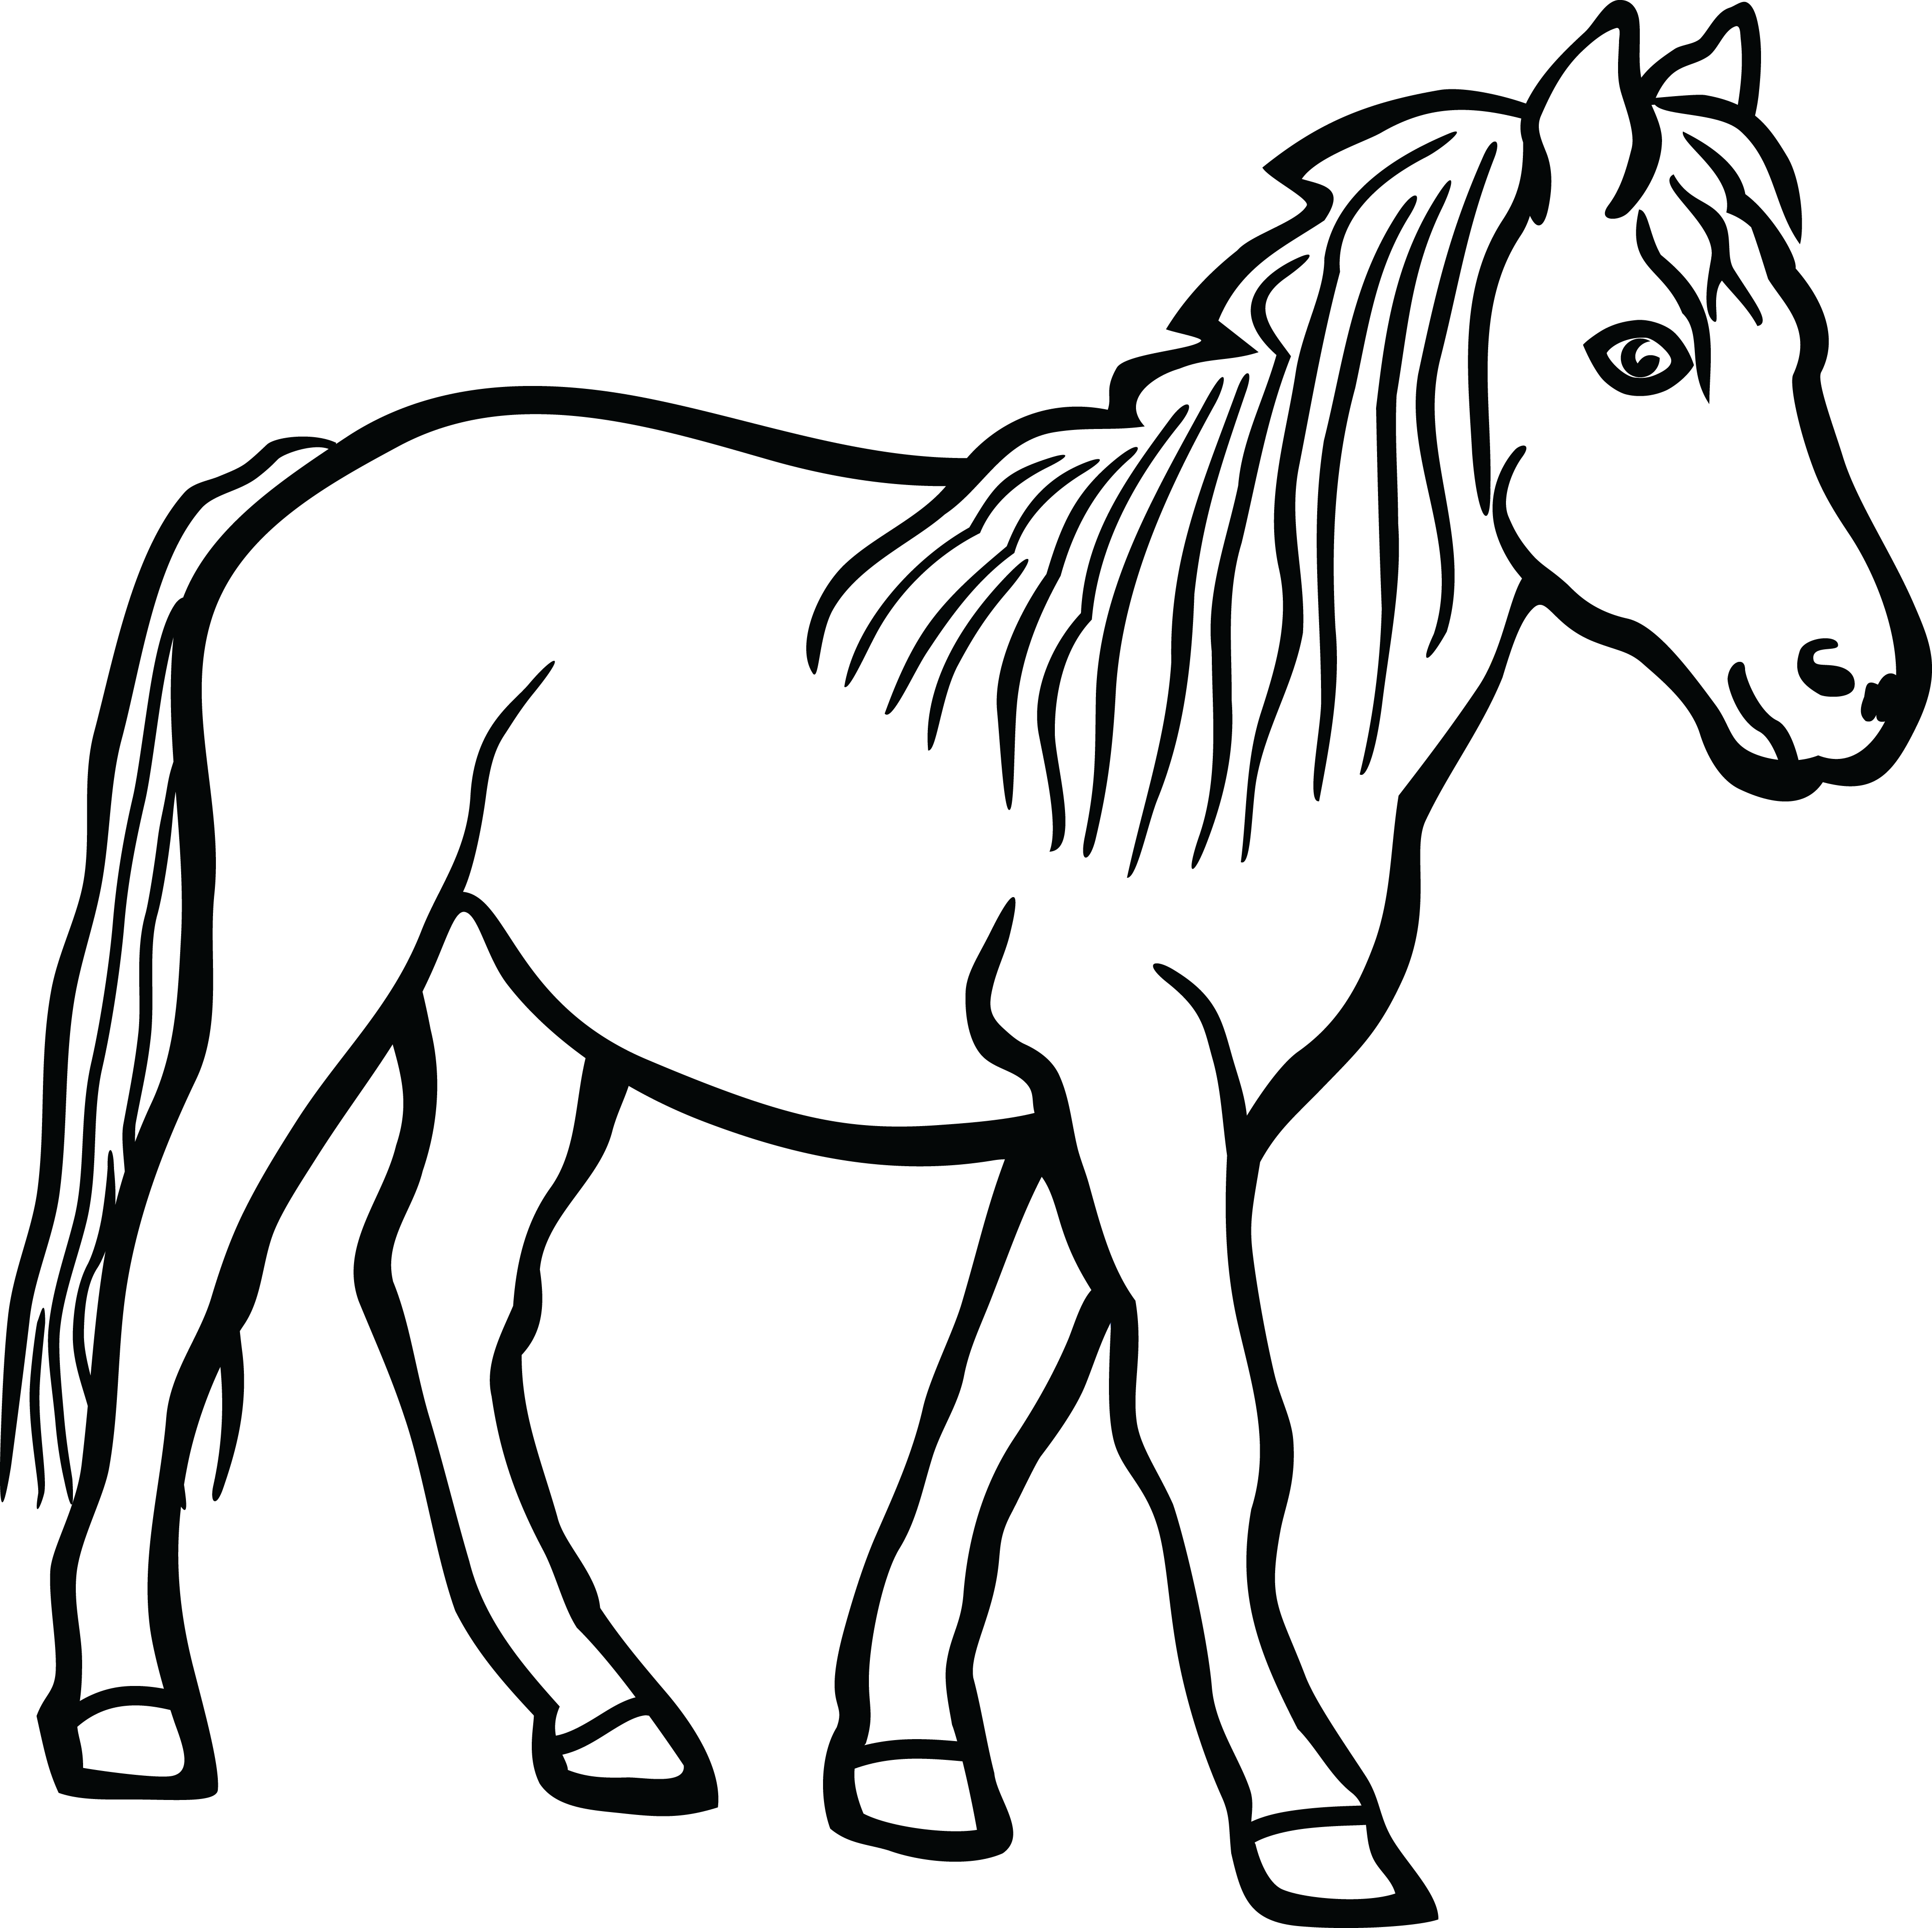 Free Clipart Of A Horse. White Black Hor #72531.